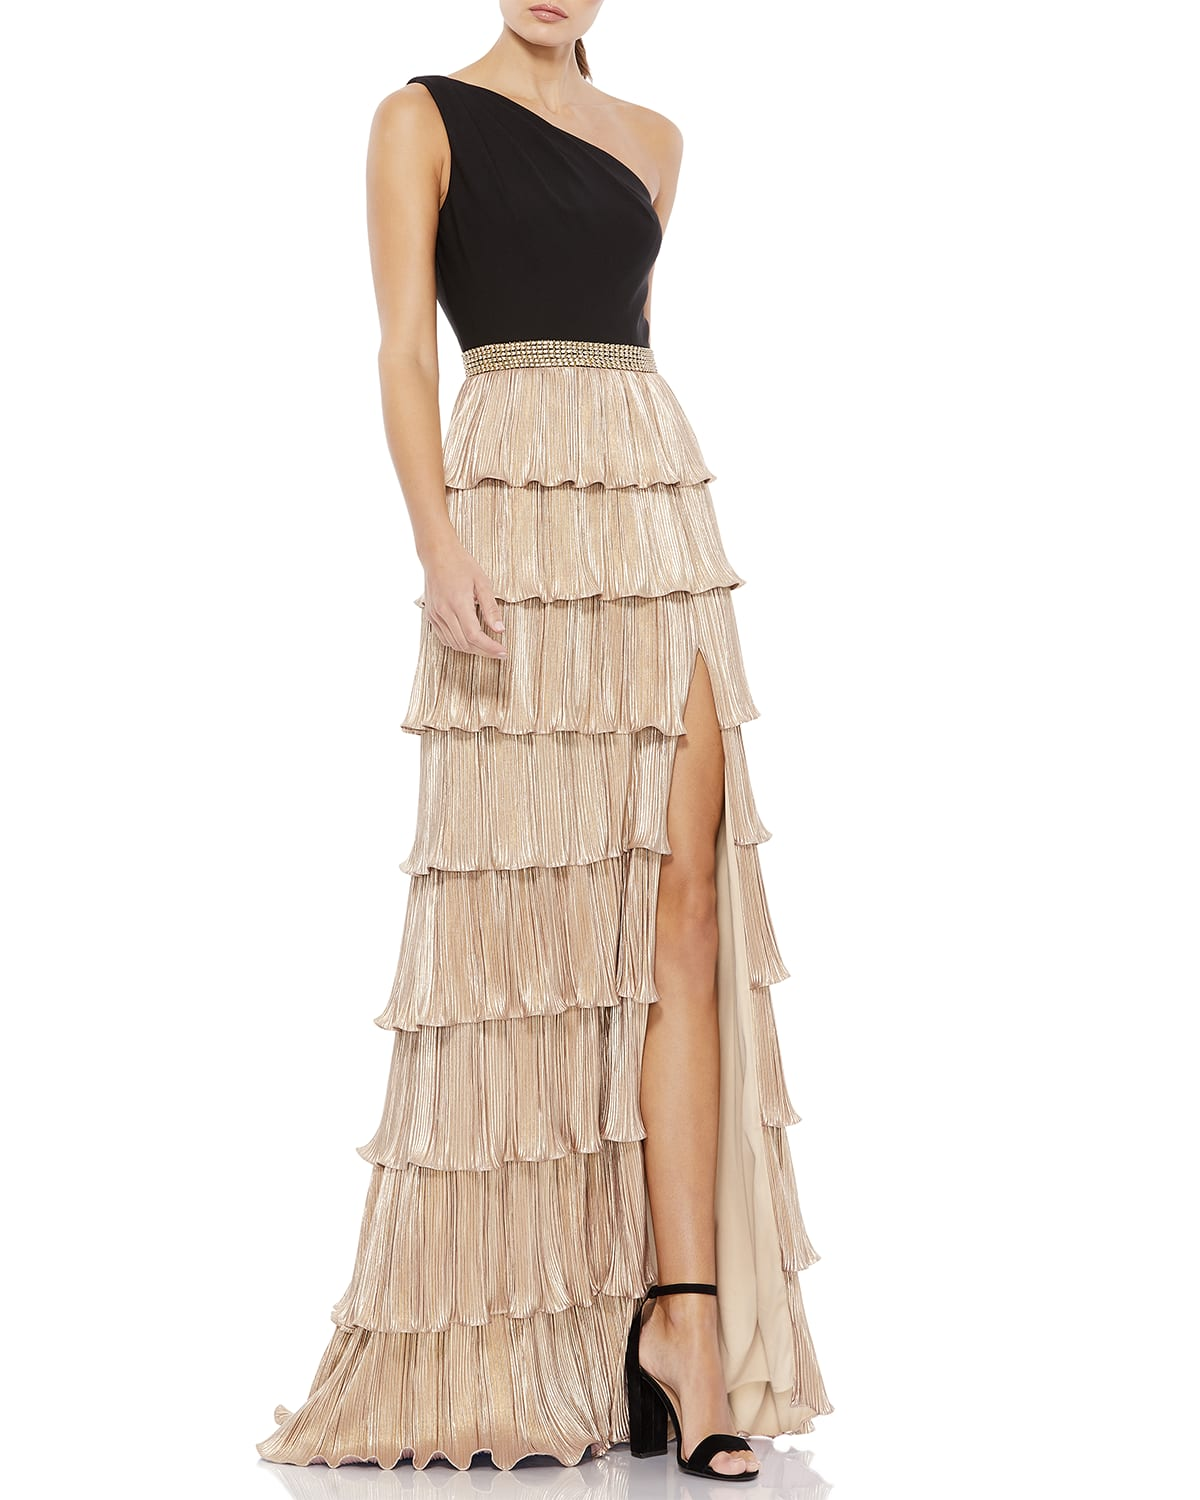 One-Shoulder Metallic Ruffle-Tiered Gown